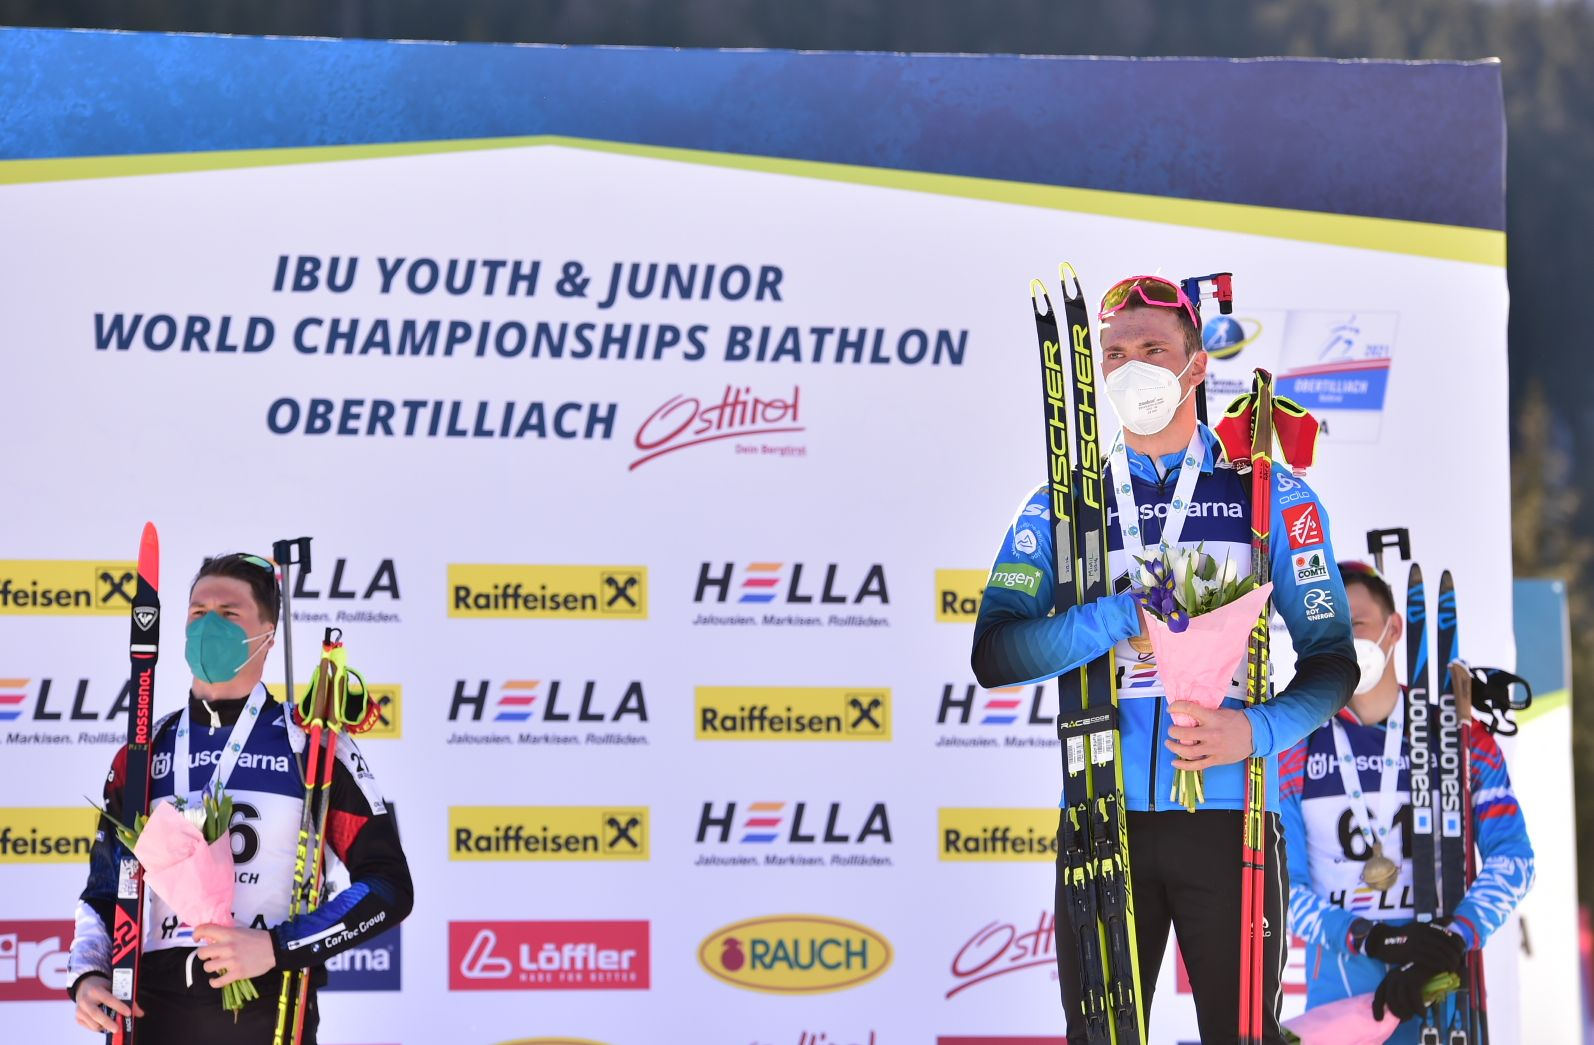 Emilien Claude double champion du monde junior de biathlon